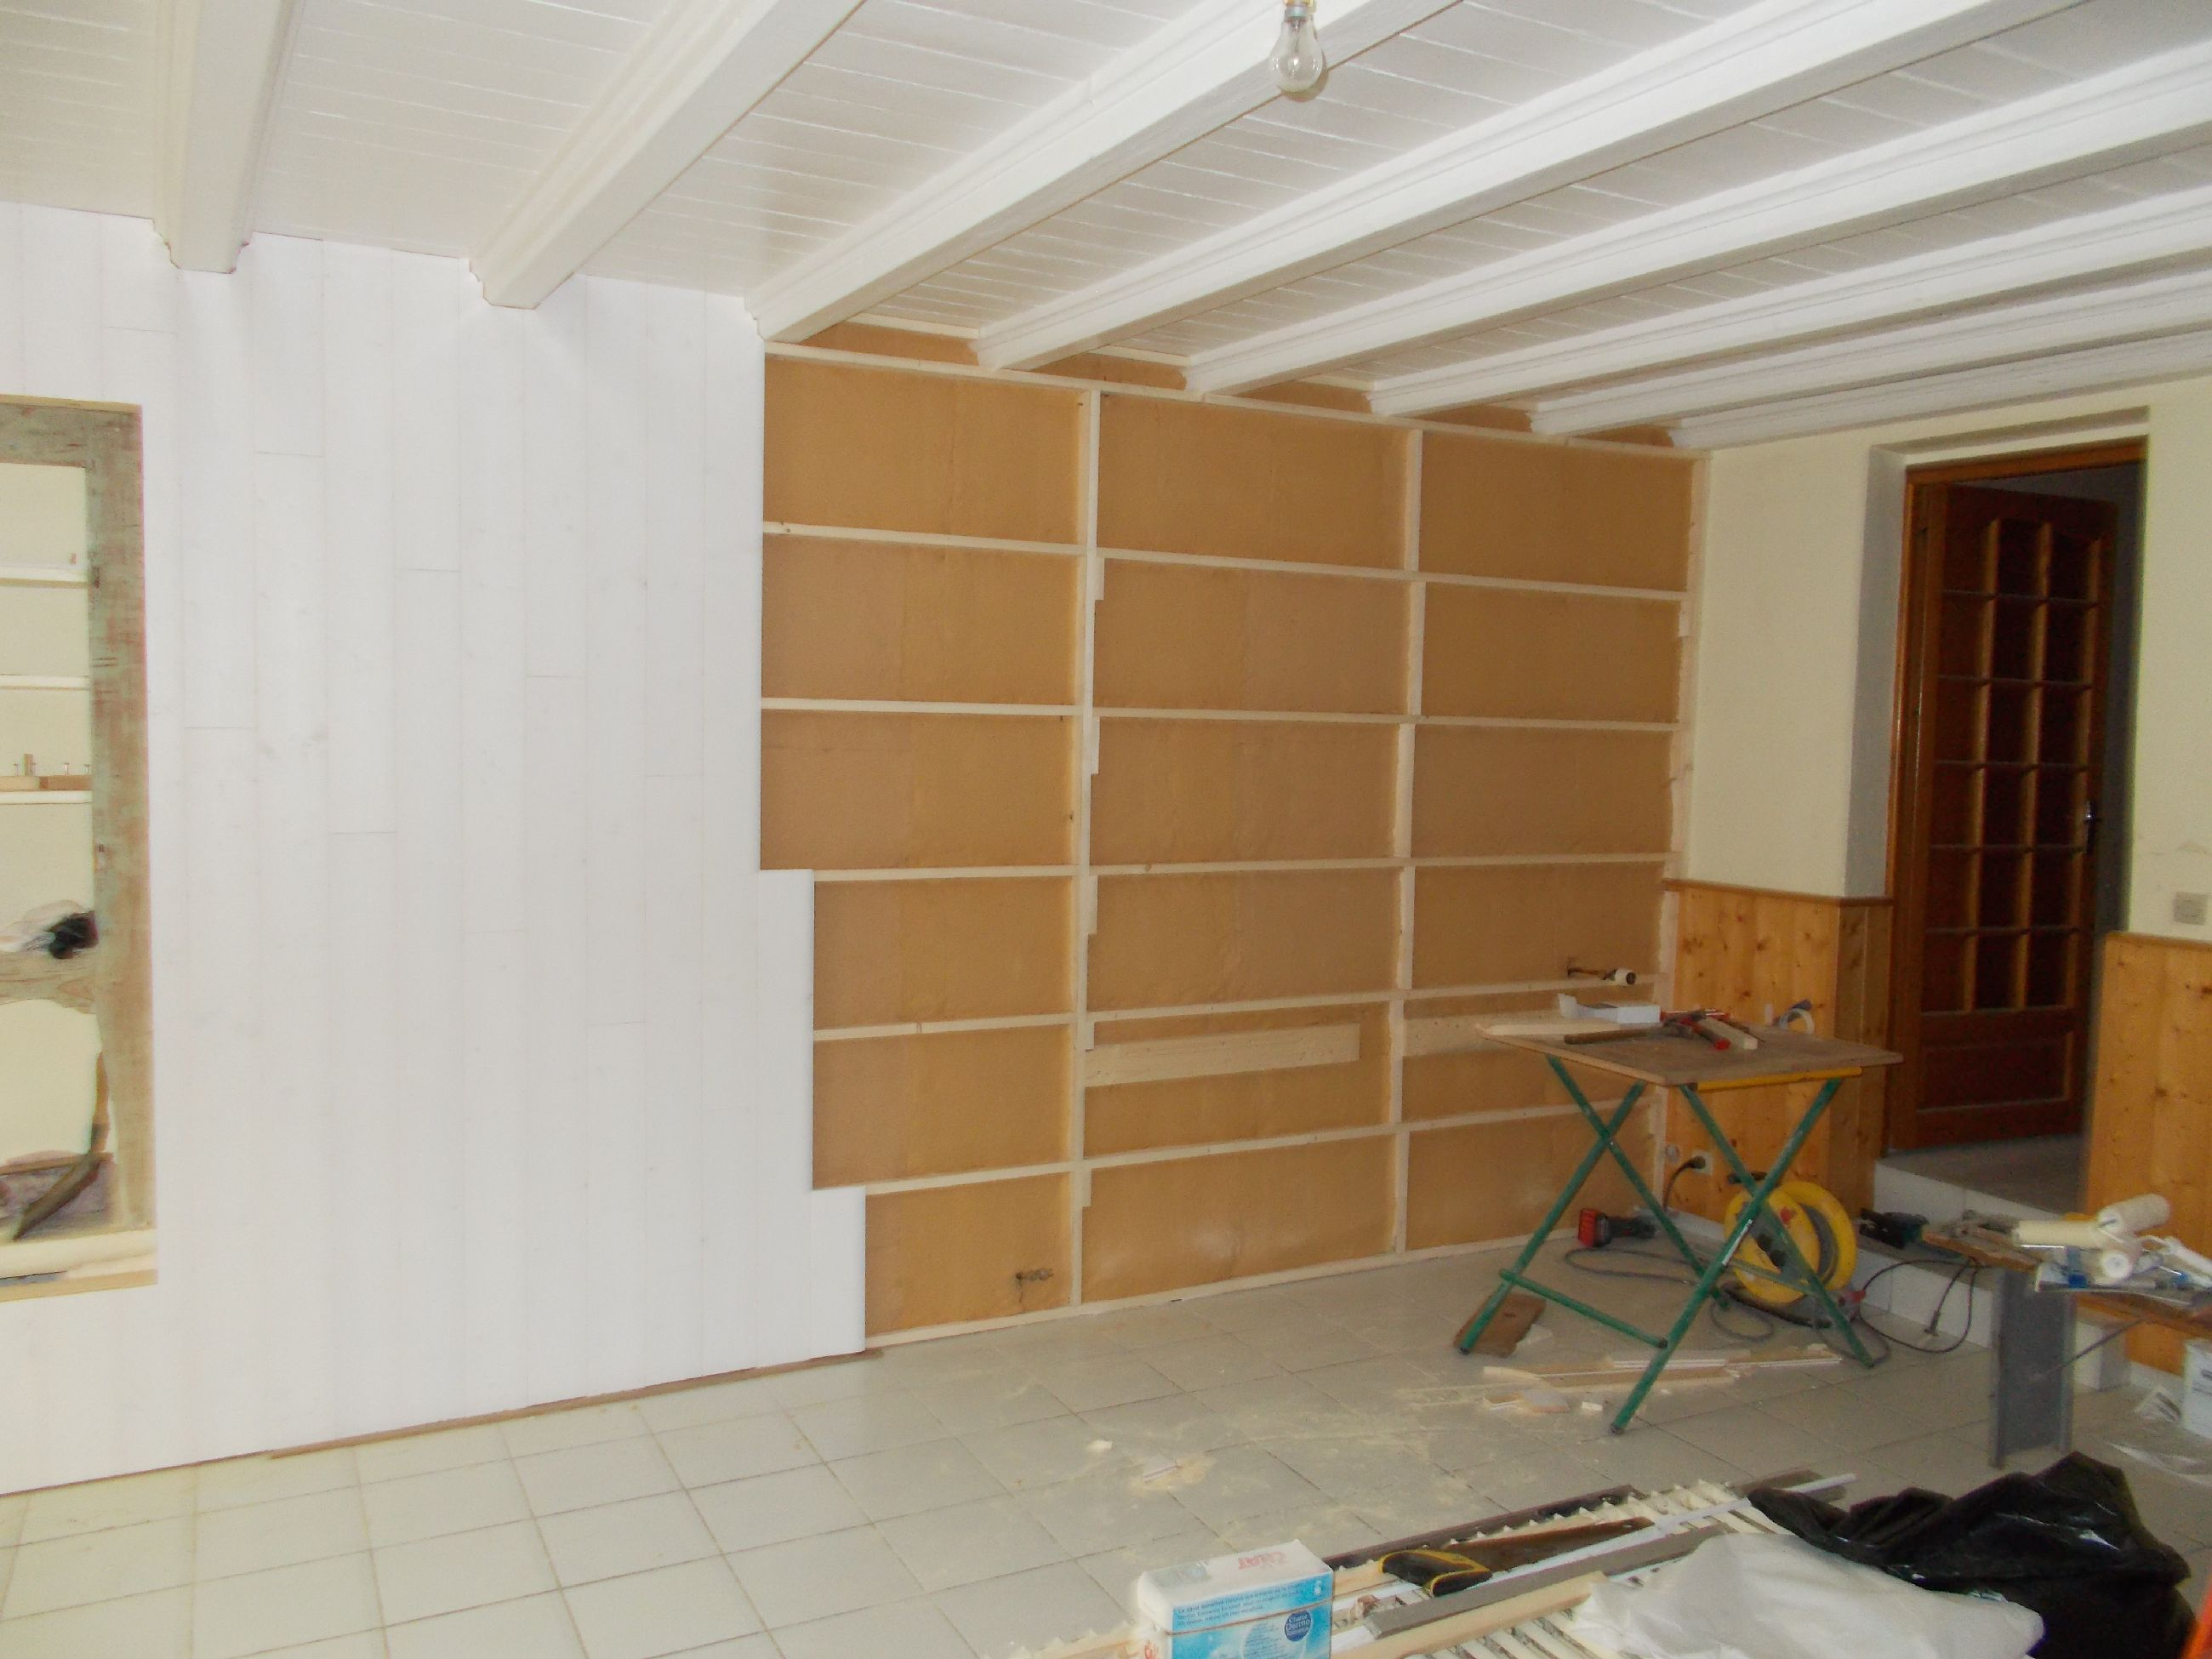 Doublage mur excellent doublage mur with doublage mur for Isoler les murs de son garage